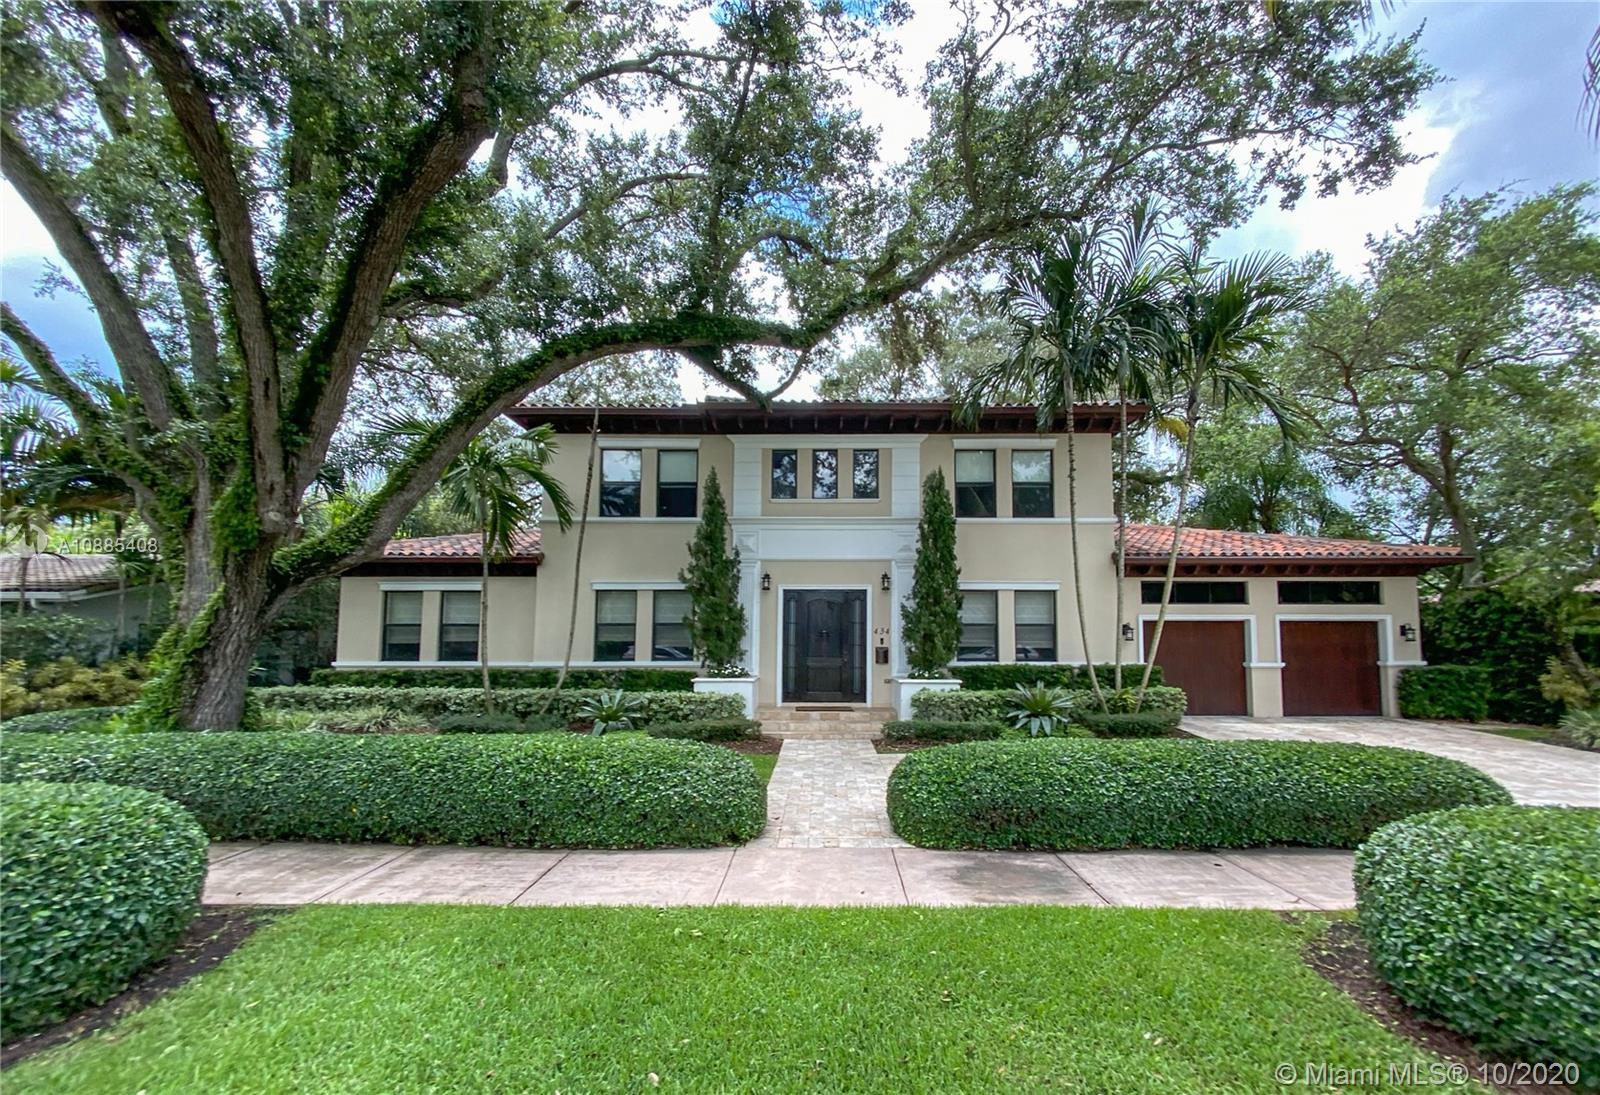 This 2007 custom built home is located in the Chinese Village neighborhood of Coral Gables. The 5 bedroom, 4.5 bathroom home features 3,956 SF (Adj), a great floor plan, high ceilings, a spacious living and dining room, oversized master bedroom with huge terrace and walk-in closet, top of the line finishes as well as impact glass windows & doors. The kitchen comes with top of the line appliances and Granite counter tops. The home offers Travertine Marble floors in all areas and wood floors in the bedrooms. The large family room overlooks the covered terrace and pool area. The home sits on a 10,000 SF lot, which features a secluded garden with a grass area and a salt water pool.